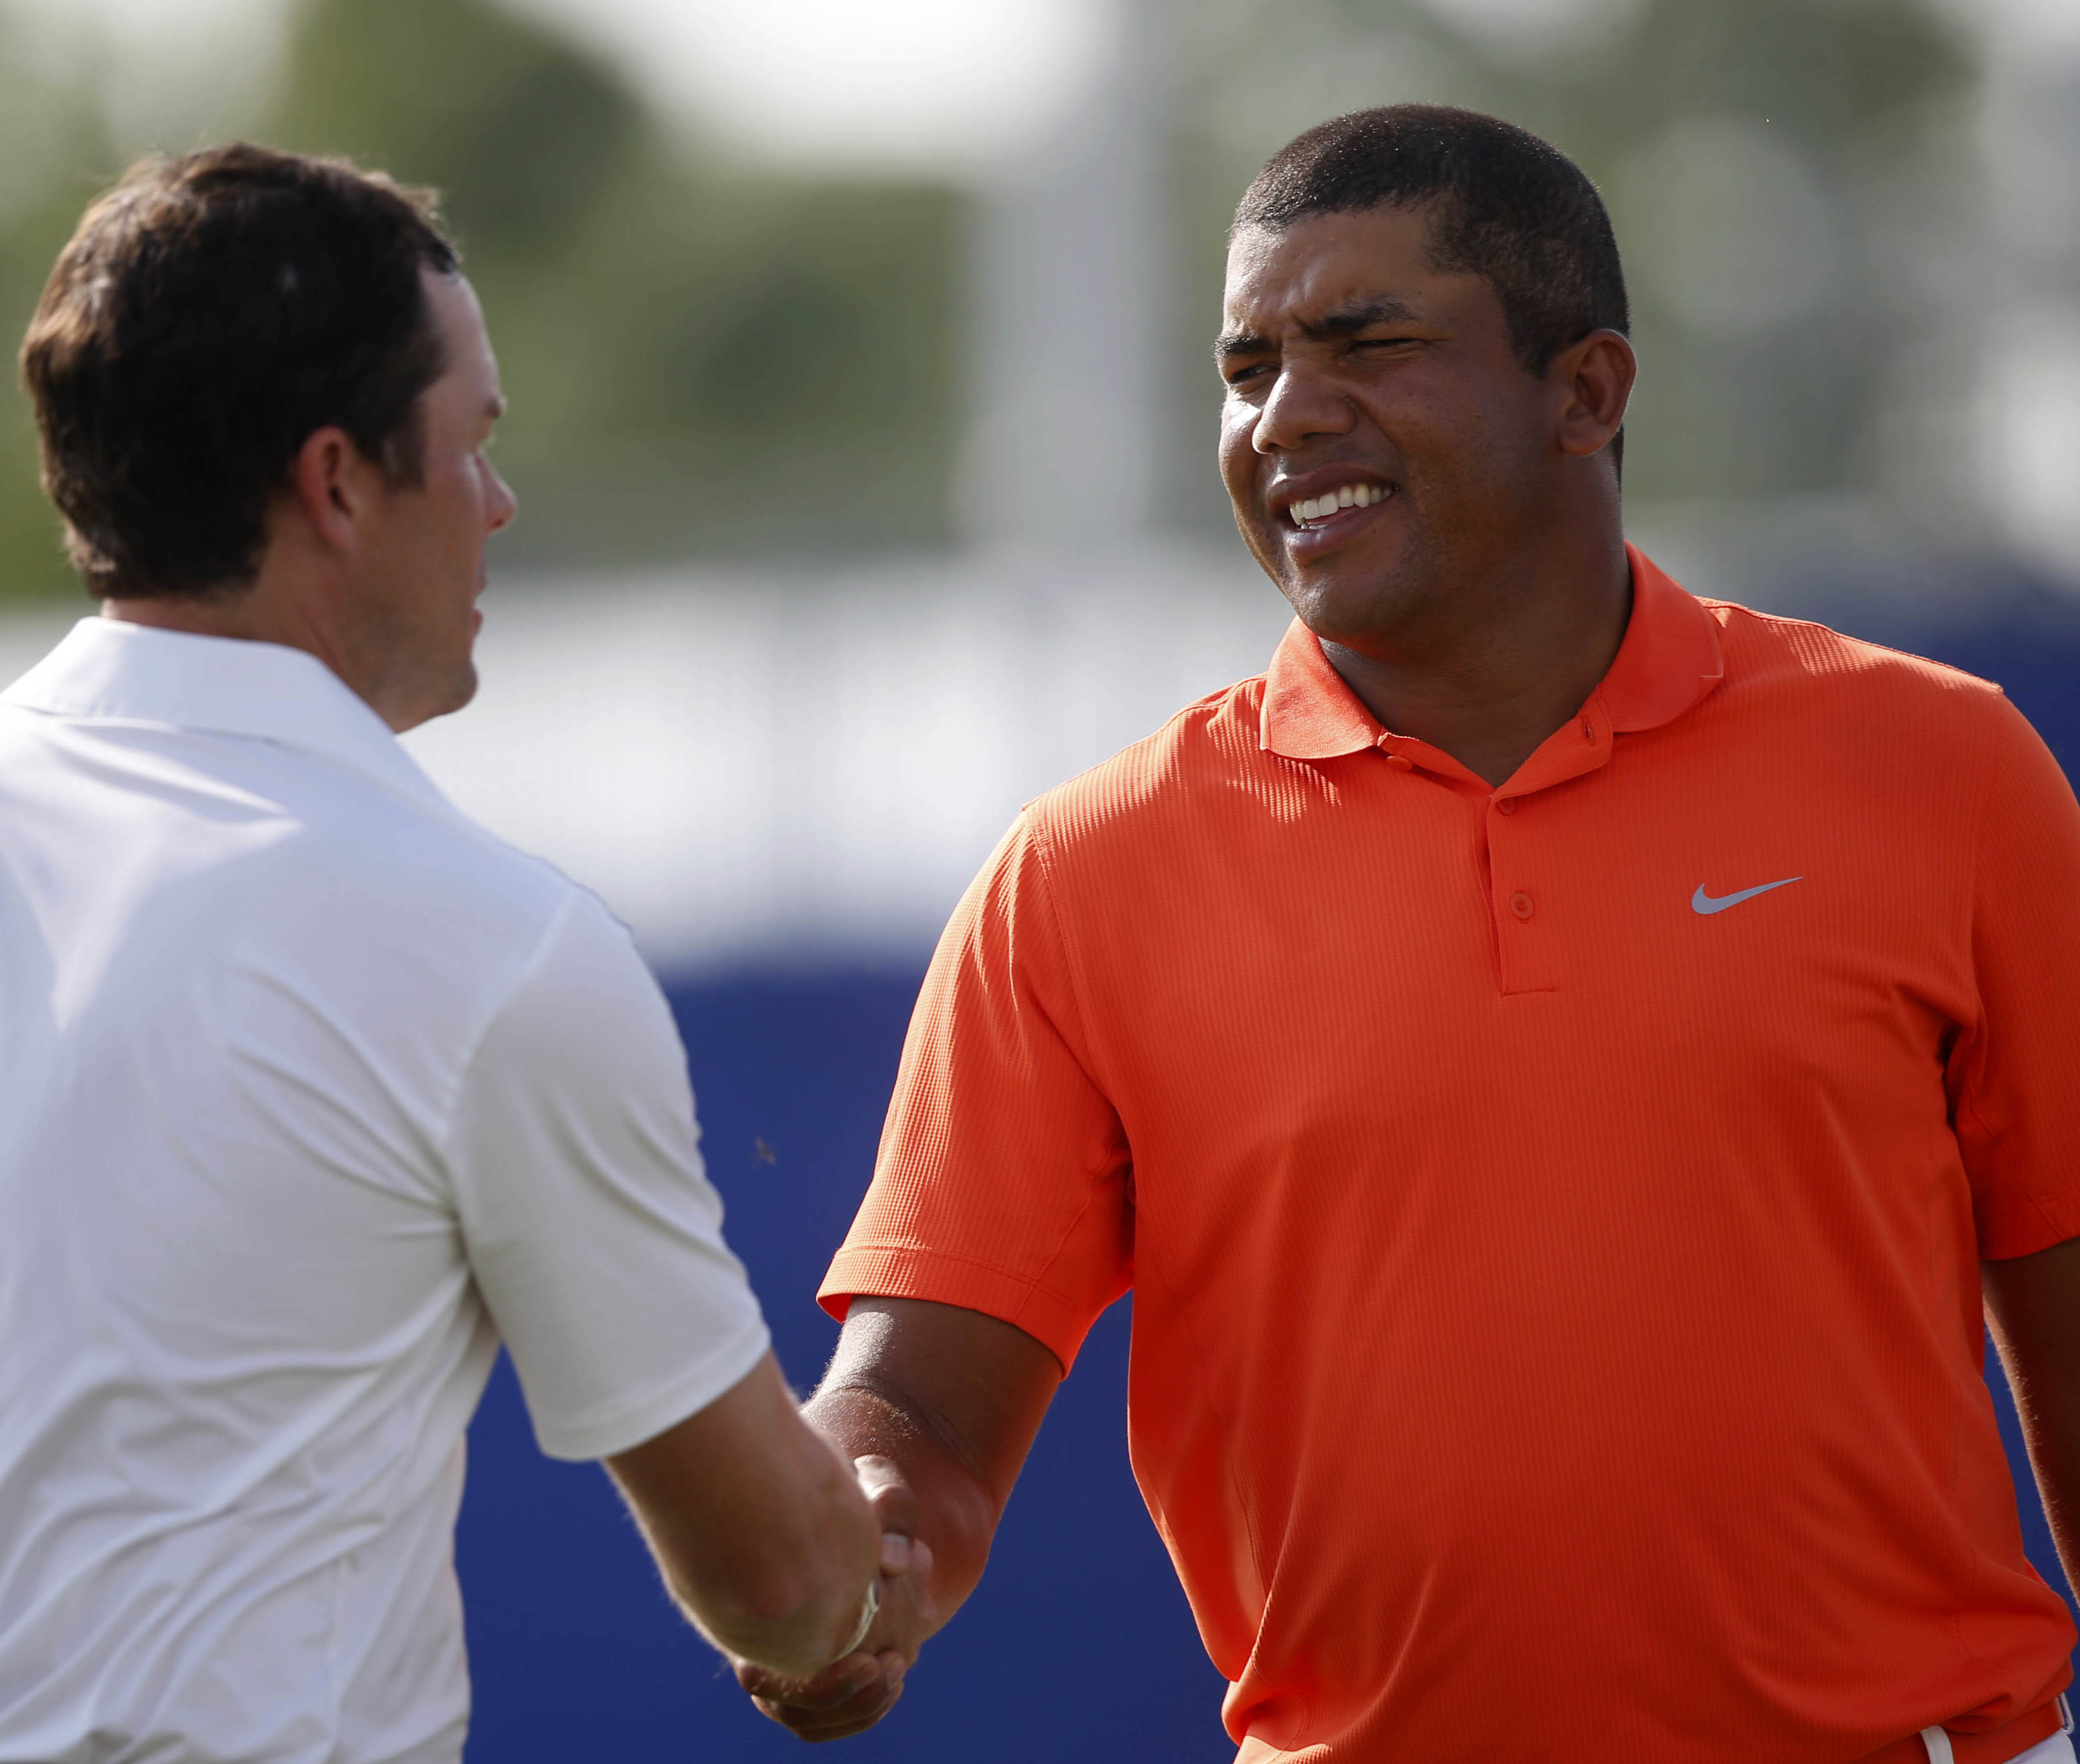 Jhonattan Vegas, right, of Venezuela, shakes hands with Kyle Reifers, left, after finishing the day on the ninth hole during the second round of the PGA Zurich Classic golf tournament at TPC Louisiana in Avondale, La., Friday, April 29, 2016. (AP Photo/Ge